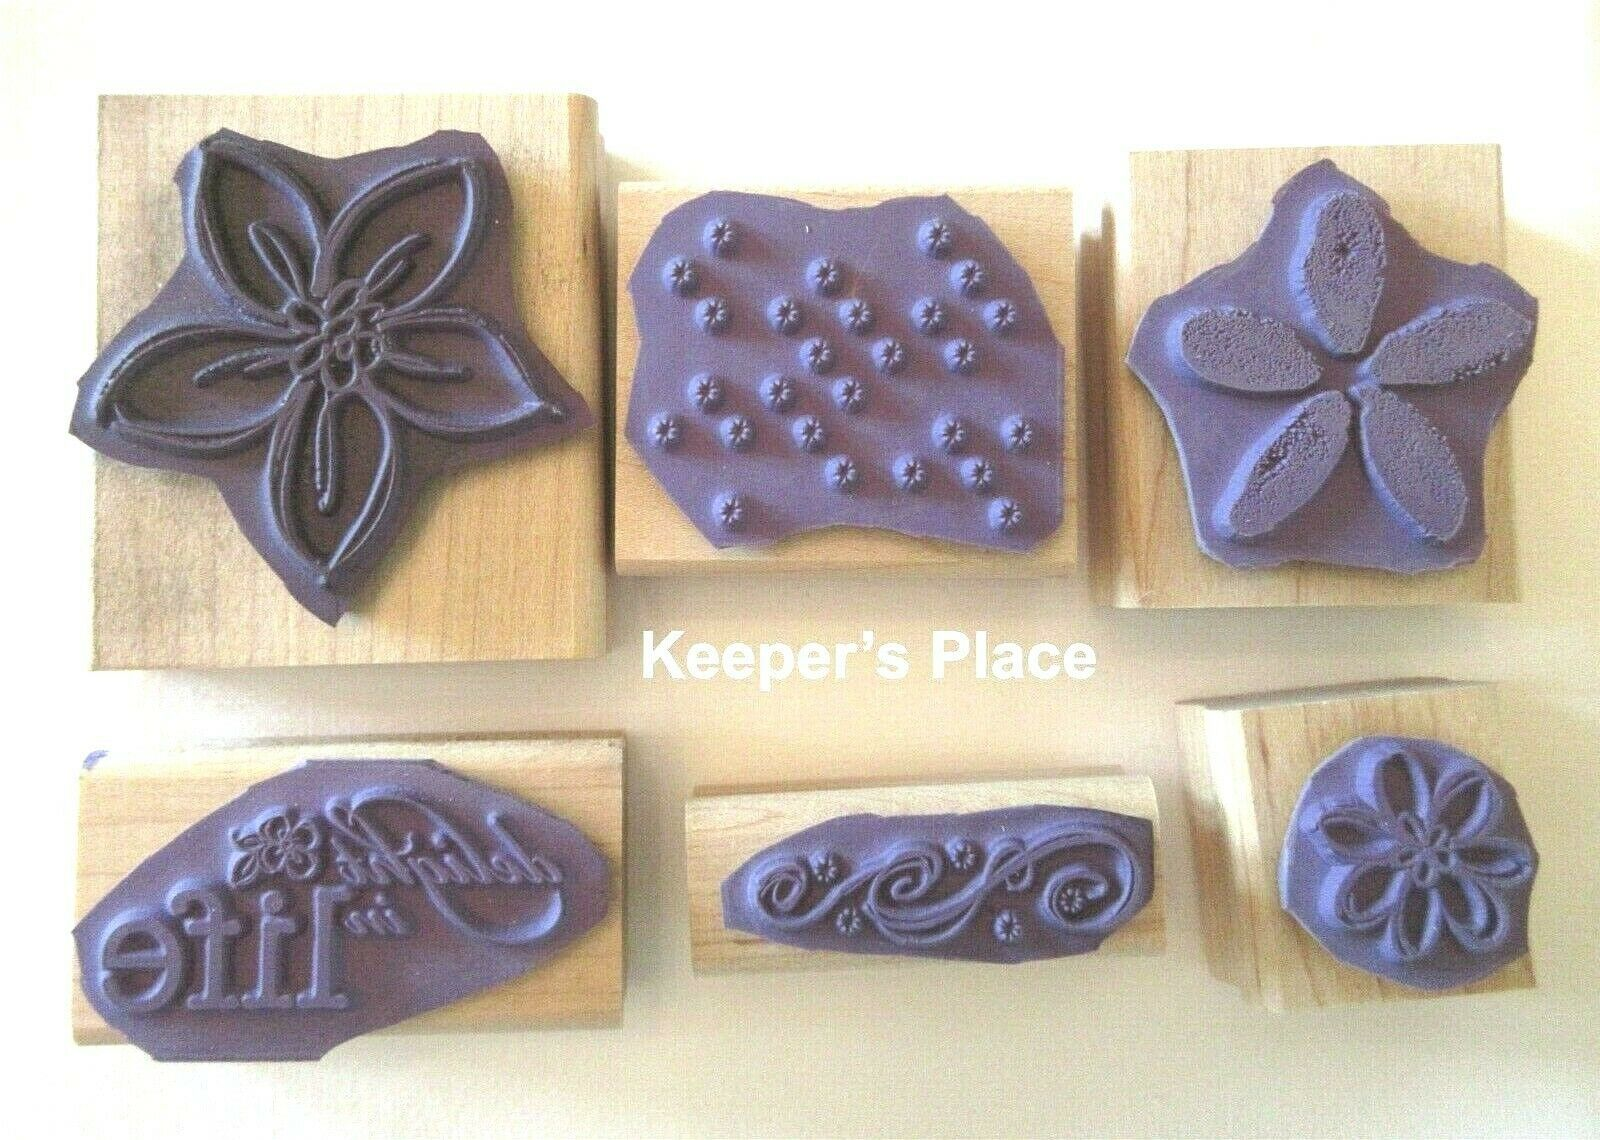 Set Of 6 Stampin Up DELIGHT IN LIFE Wood Mounted Stamps 2007 + Case image 2